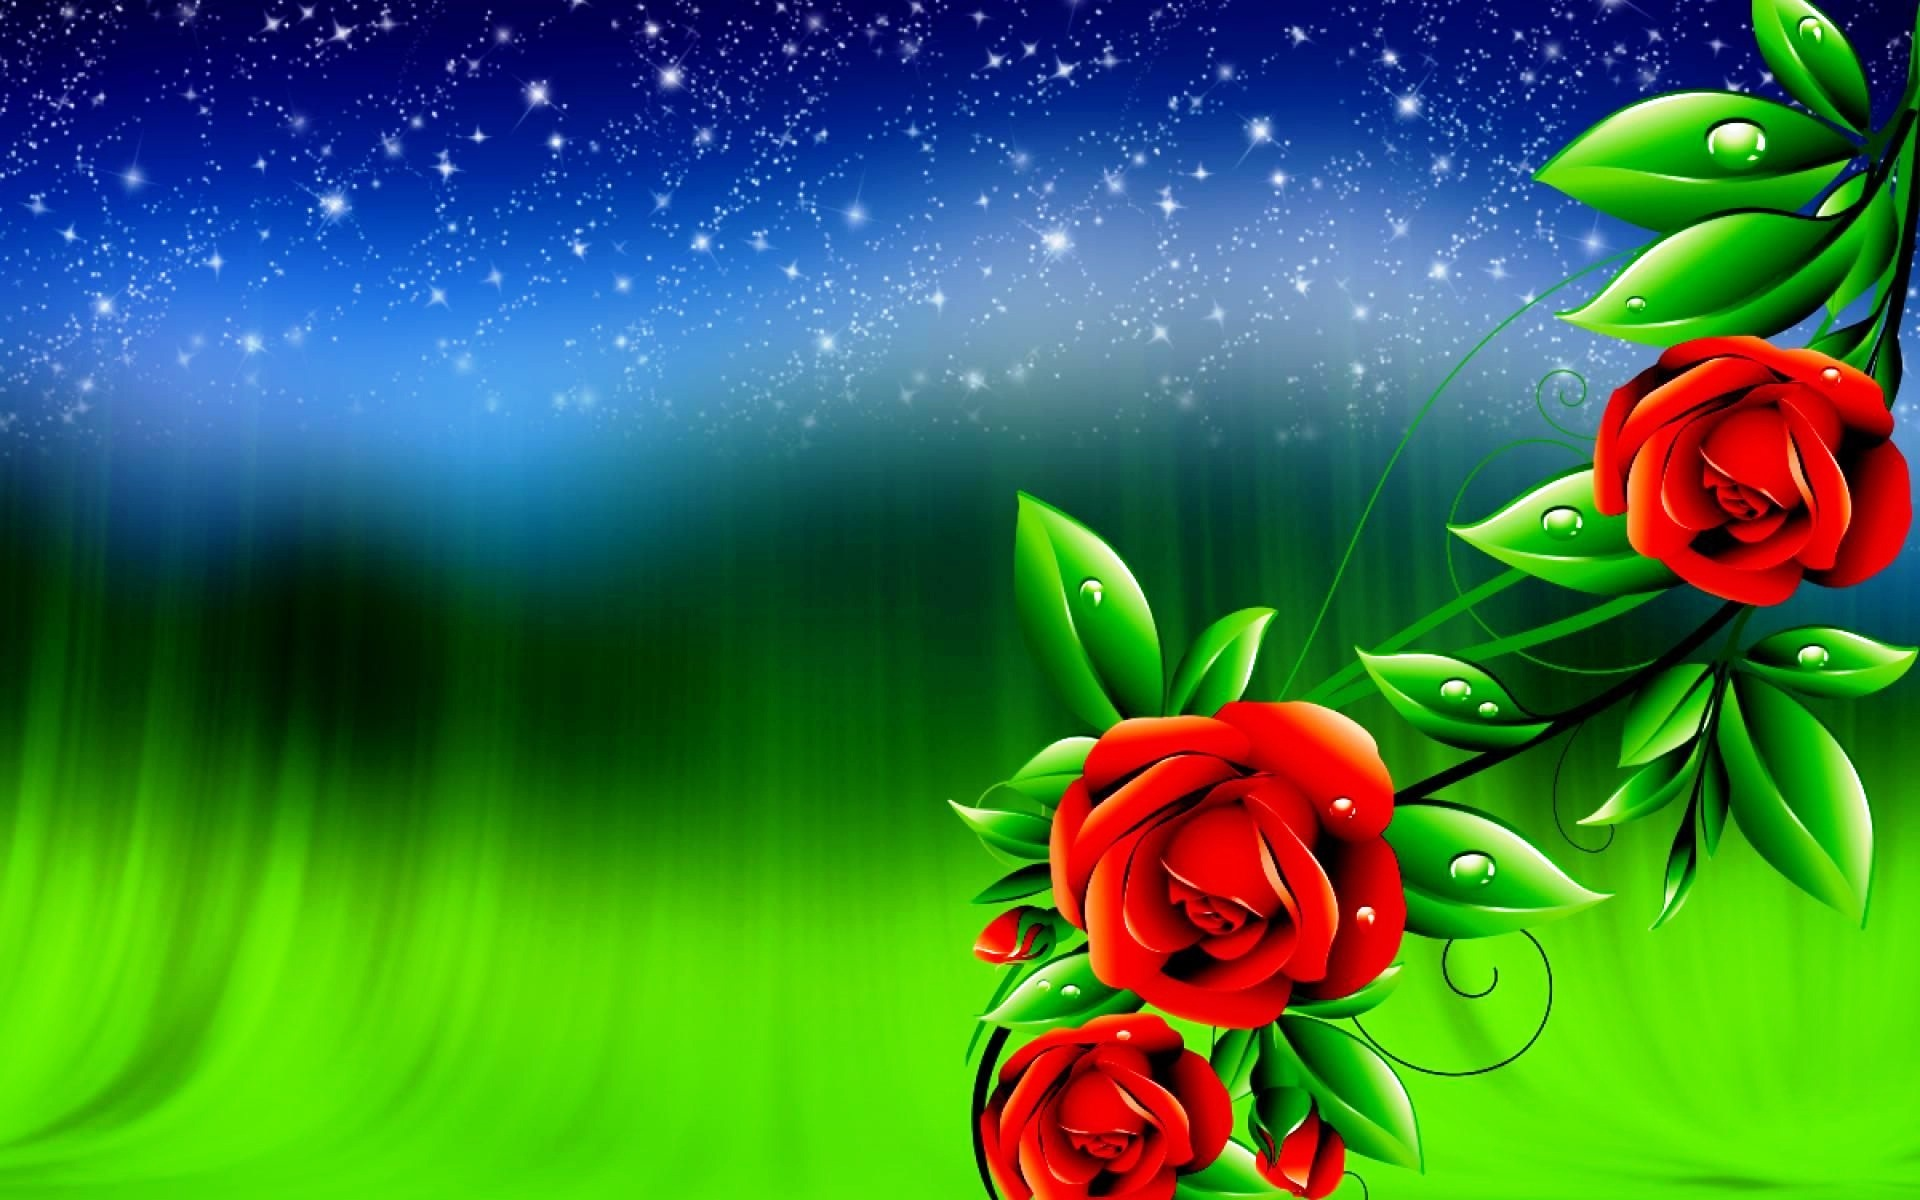 wallpaper.wiki-rose-flowers-digital-design-3d-wallpapers-pic